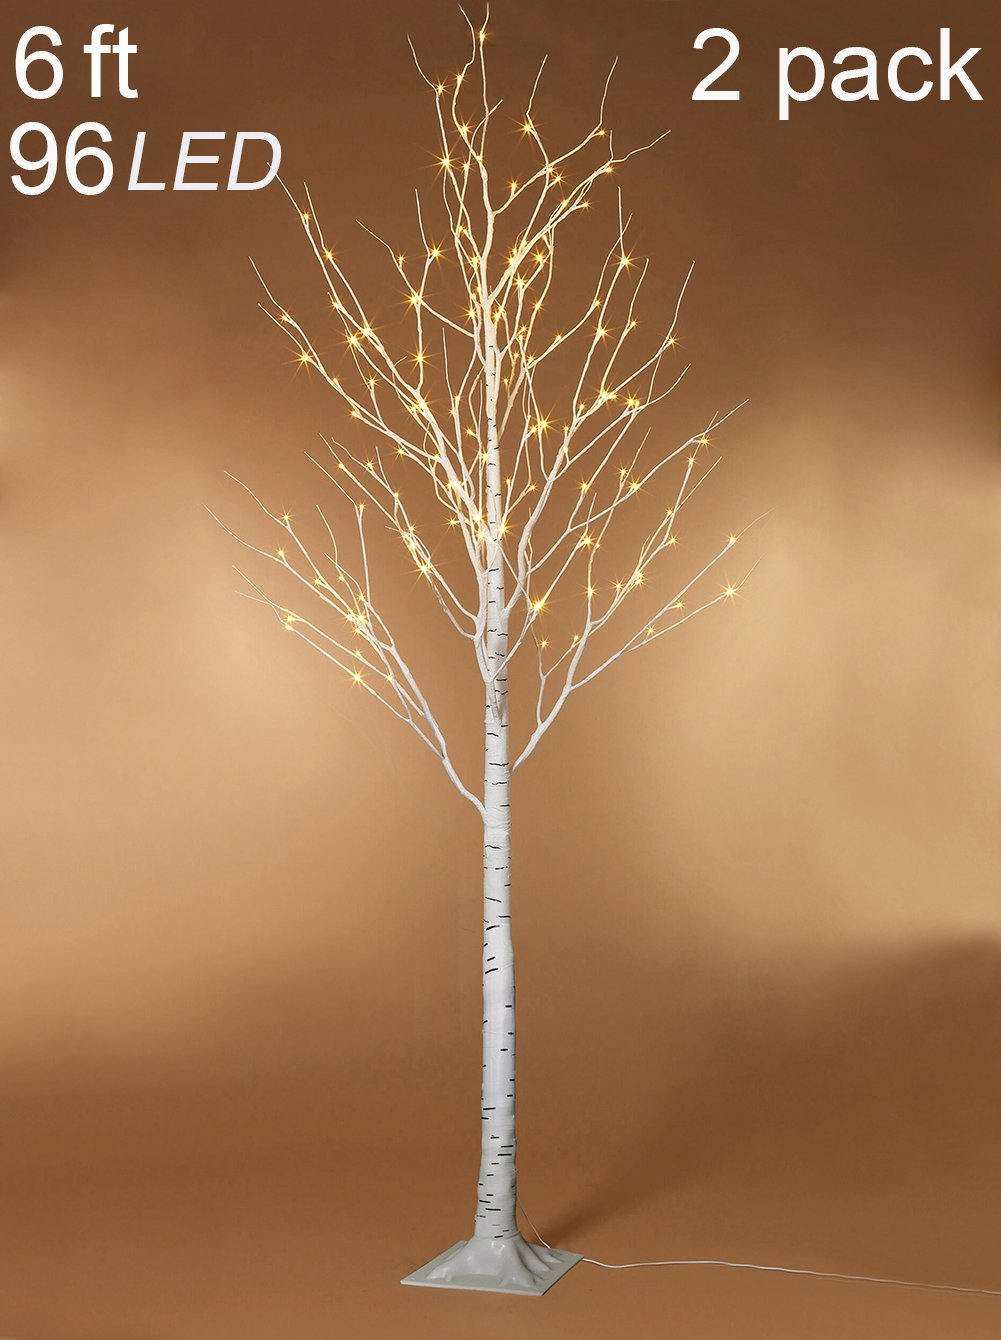 Twinkle Star 6 Feet 96 LED Lighted Birch Tree Home Wedding Party Indoor Outdoor, 2 Pack, Warm White